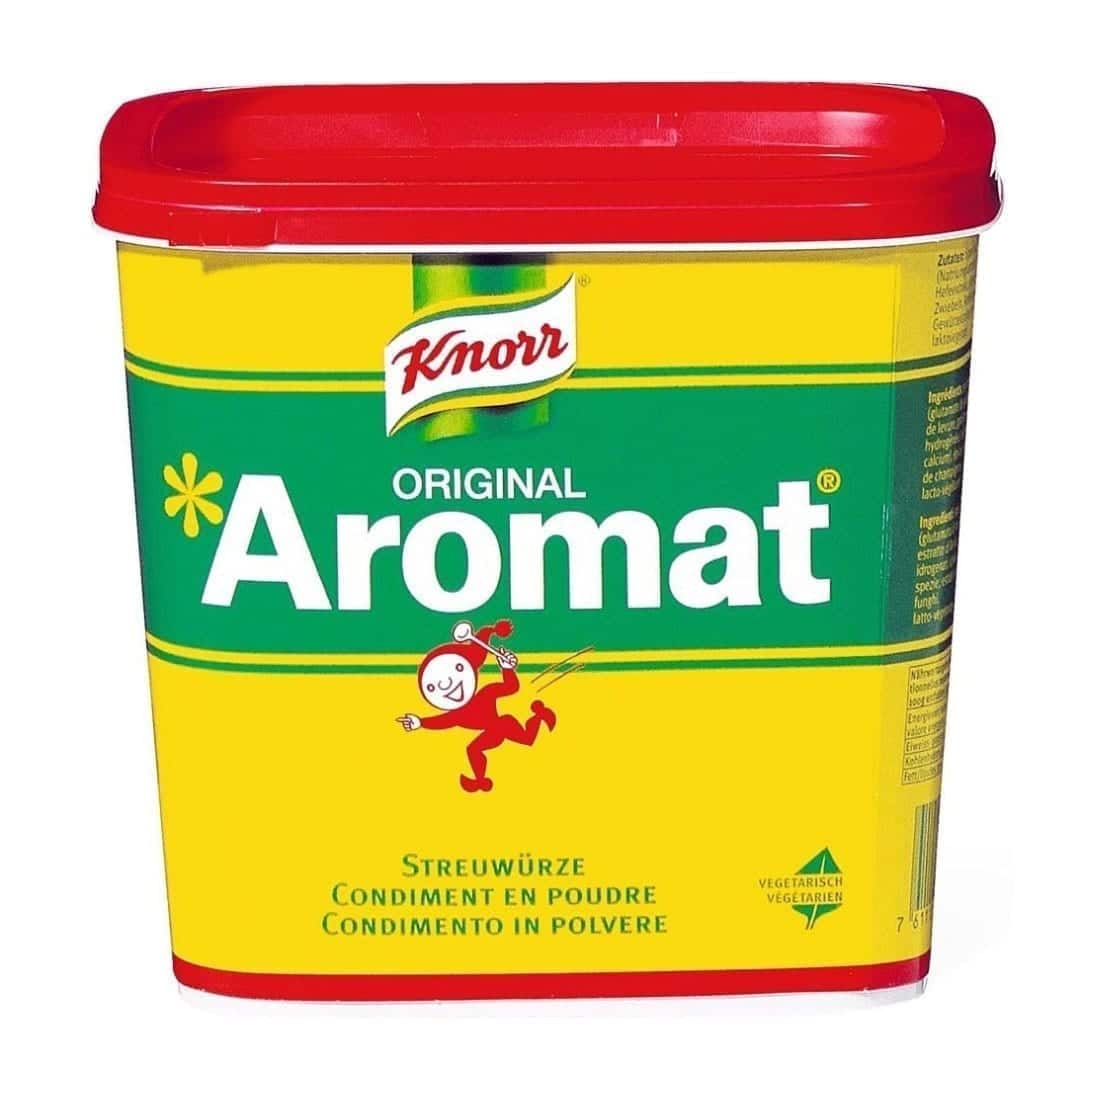 knorr aromat seasoning powder swiss made direct. Black Bedroom Furniture Sets. Home Design Ideas